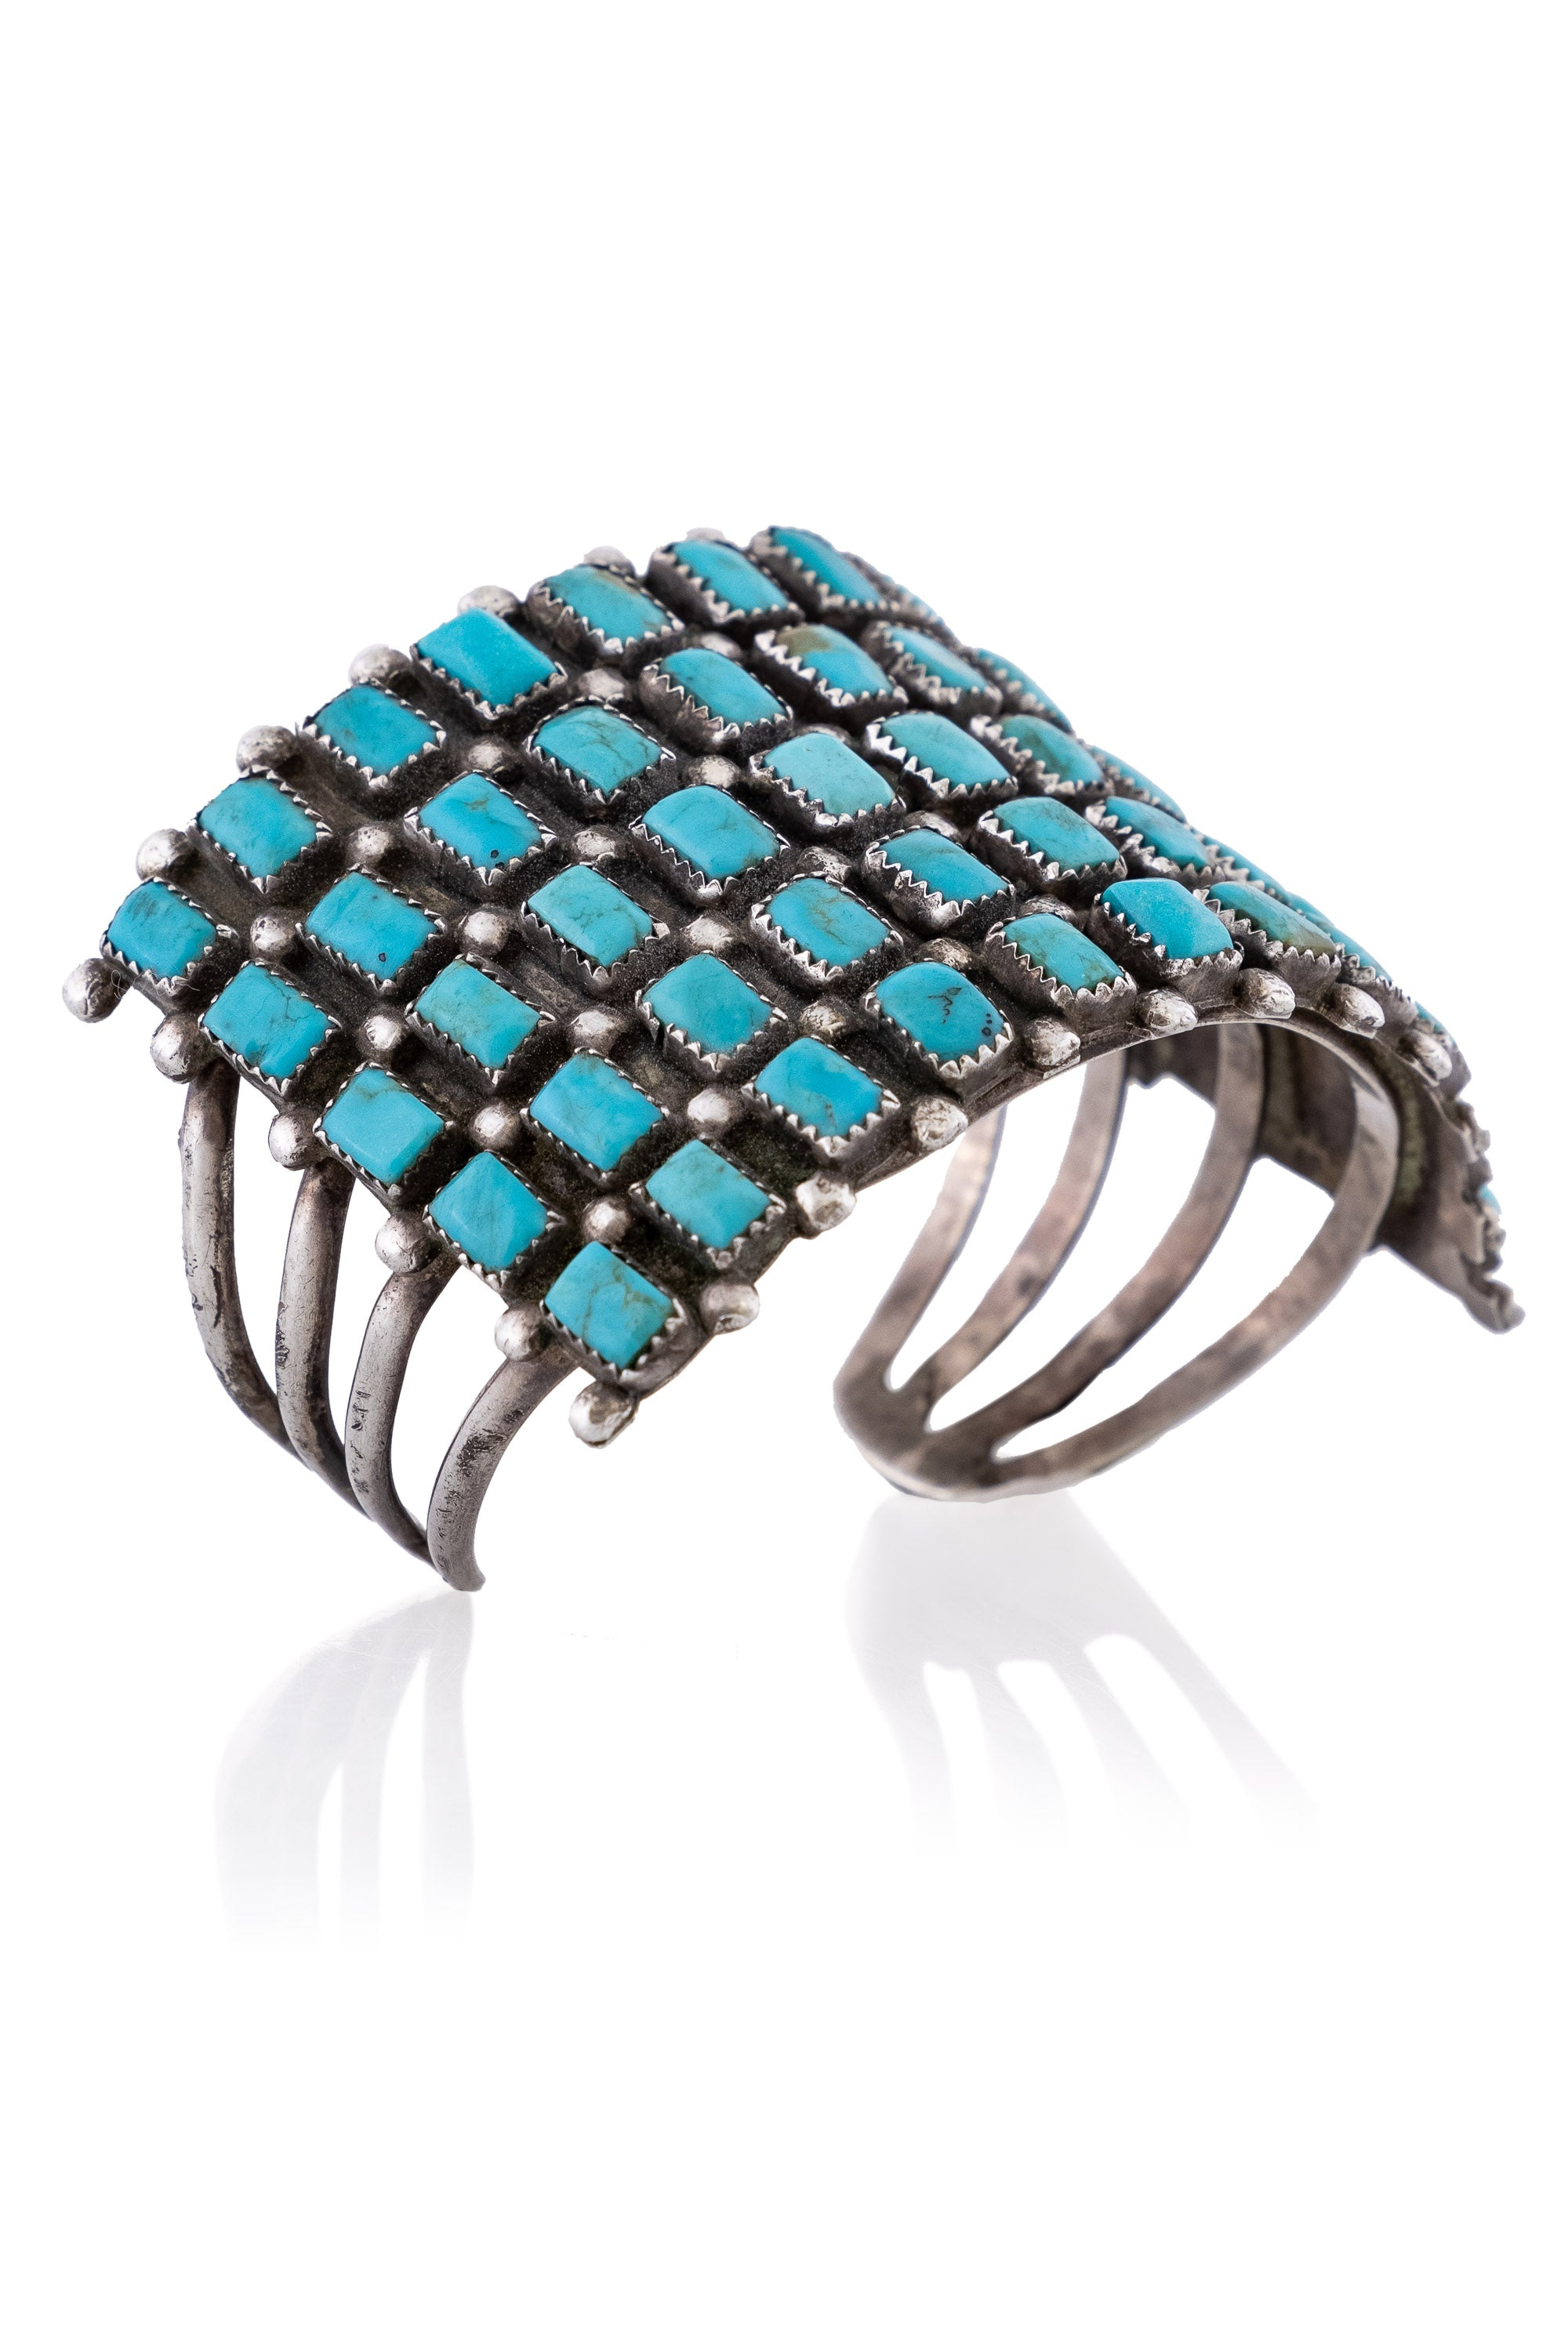 Cuff, Turquoise, Row, Vintage, '60s, 2702